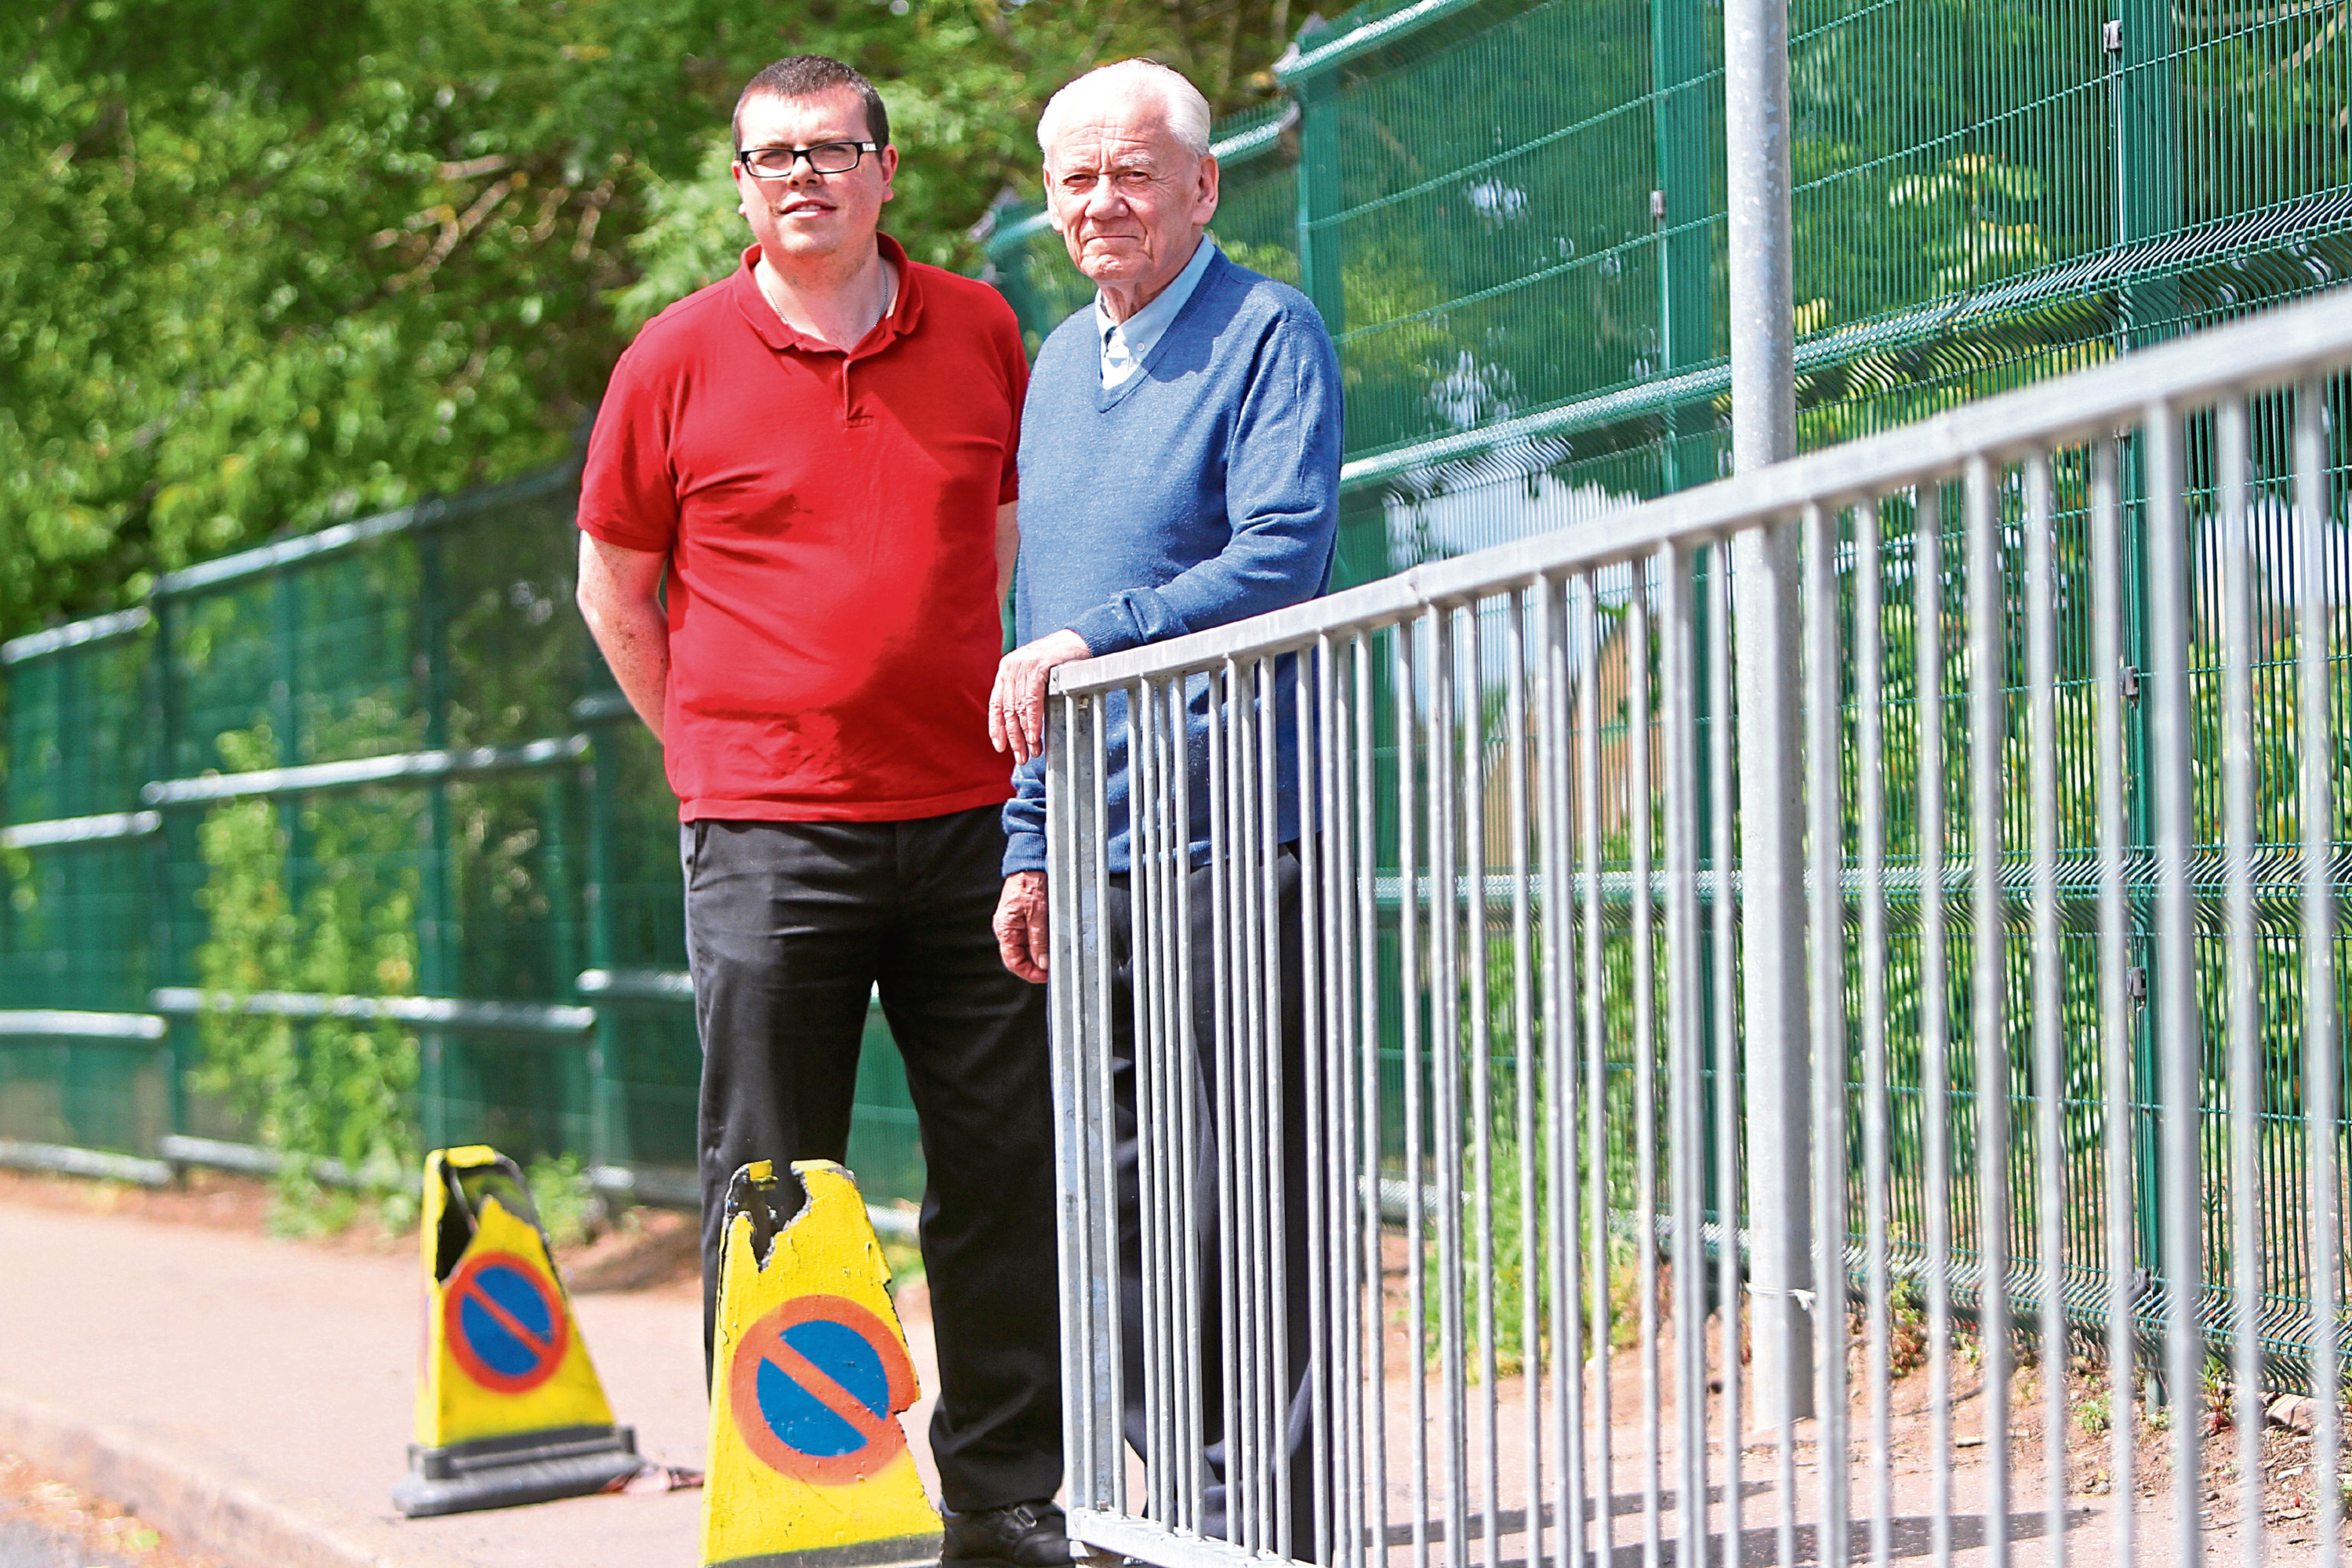 Simon Redmond and Ron Neave outside the school.